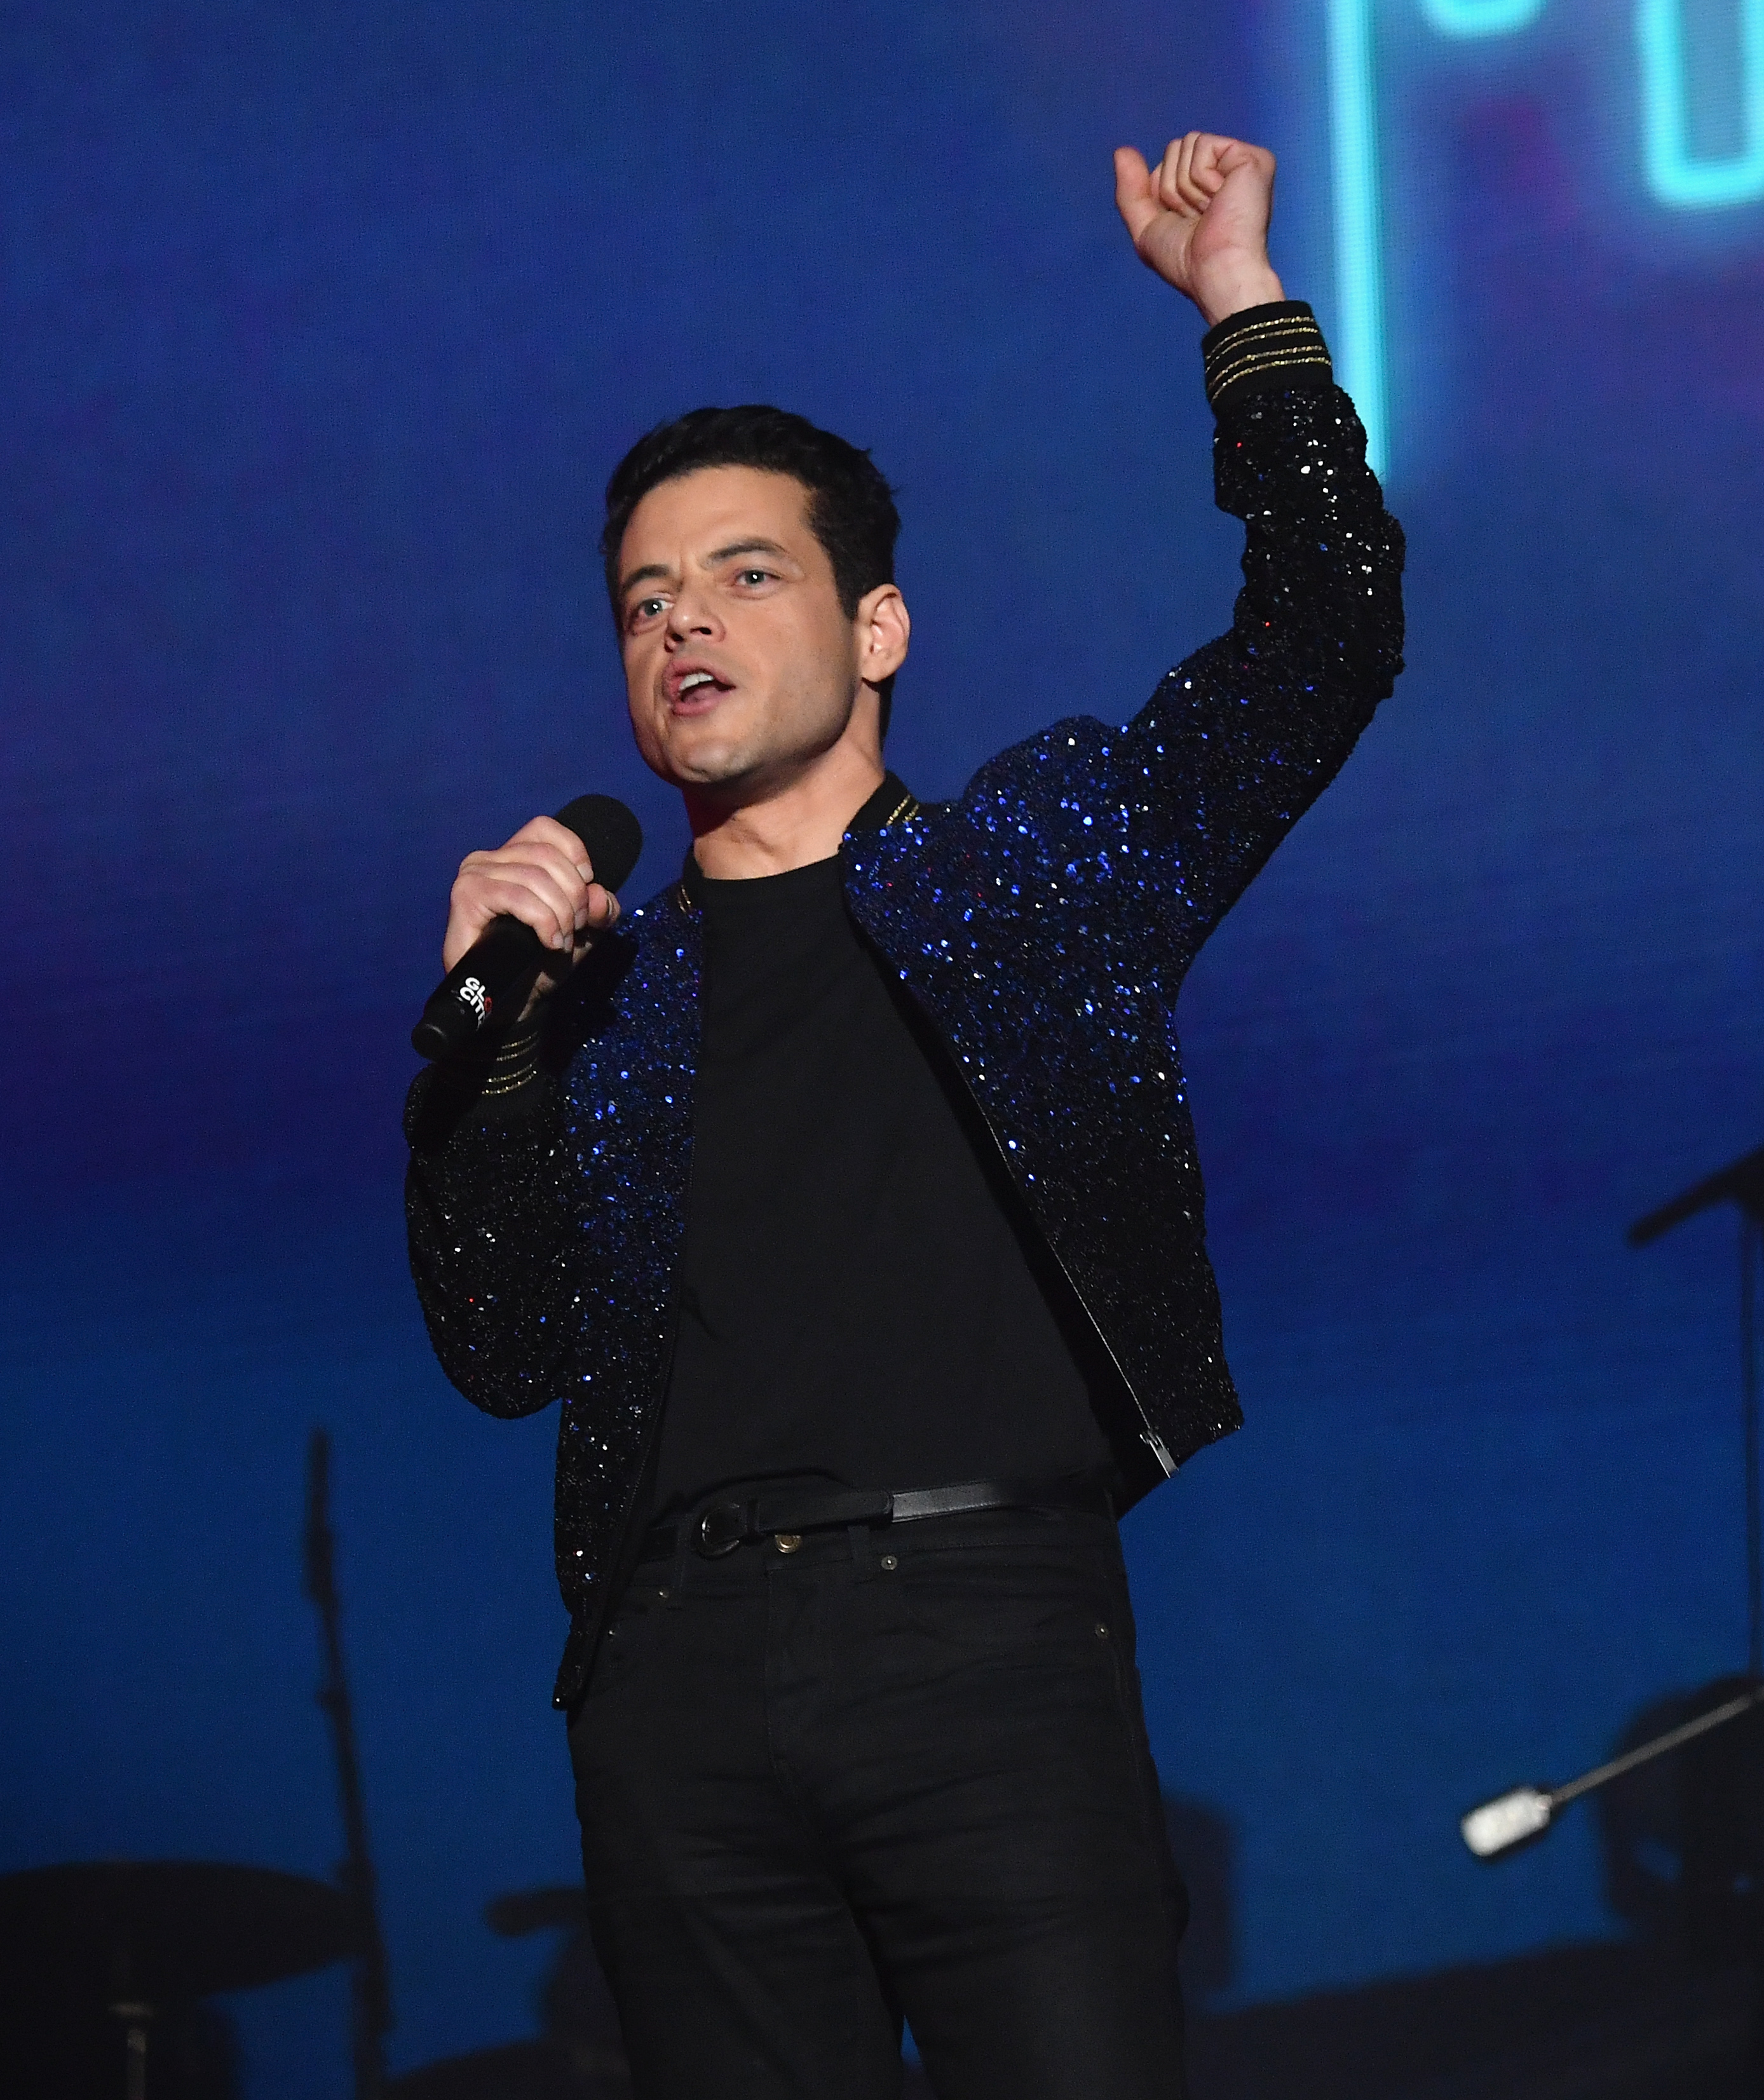 US actor Rami Malek speaks onstage at the 2019 Global Citizen Festival: Power The Movement in Central Park in New York on September 28, 2019. (Photo by Angela Weiss / AFP)        (Photo credit should read ANGELA WEISS/AFP/Getty Images)